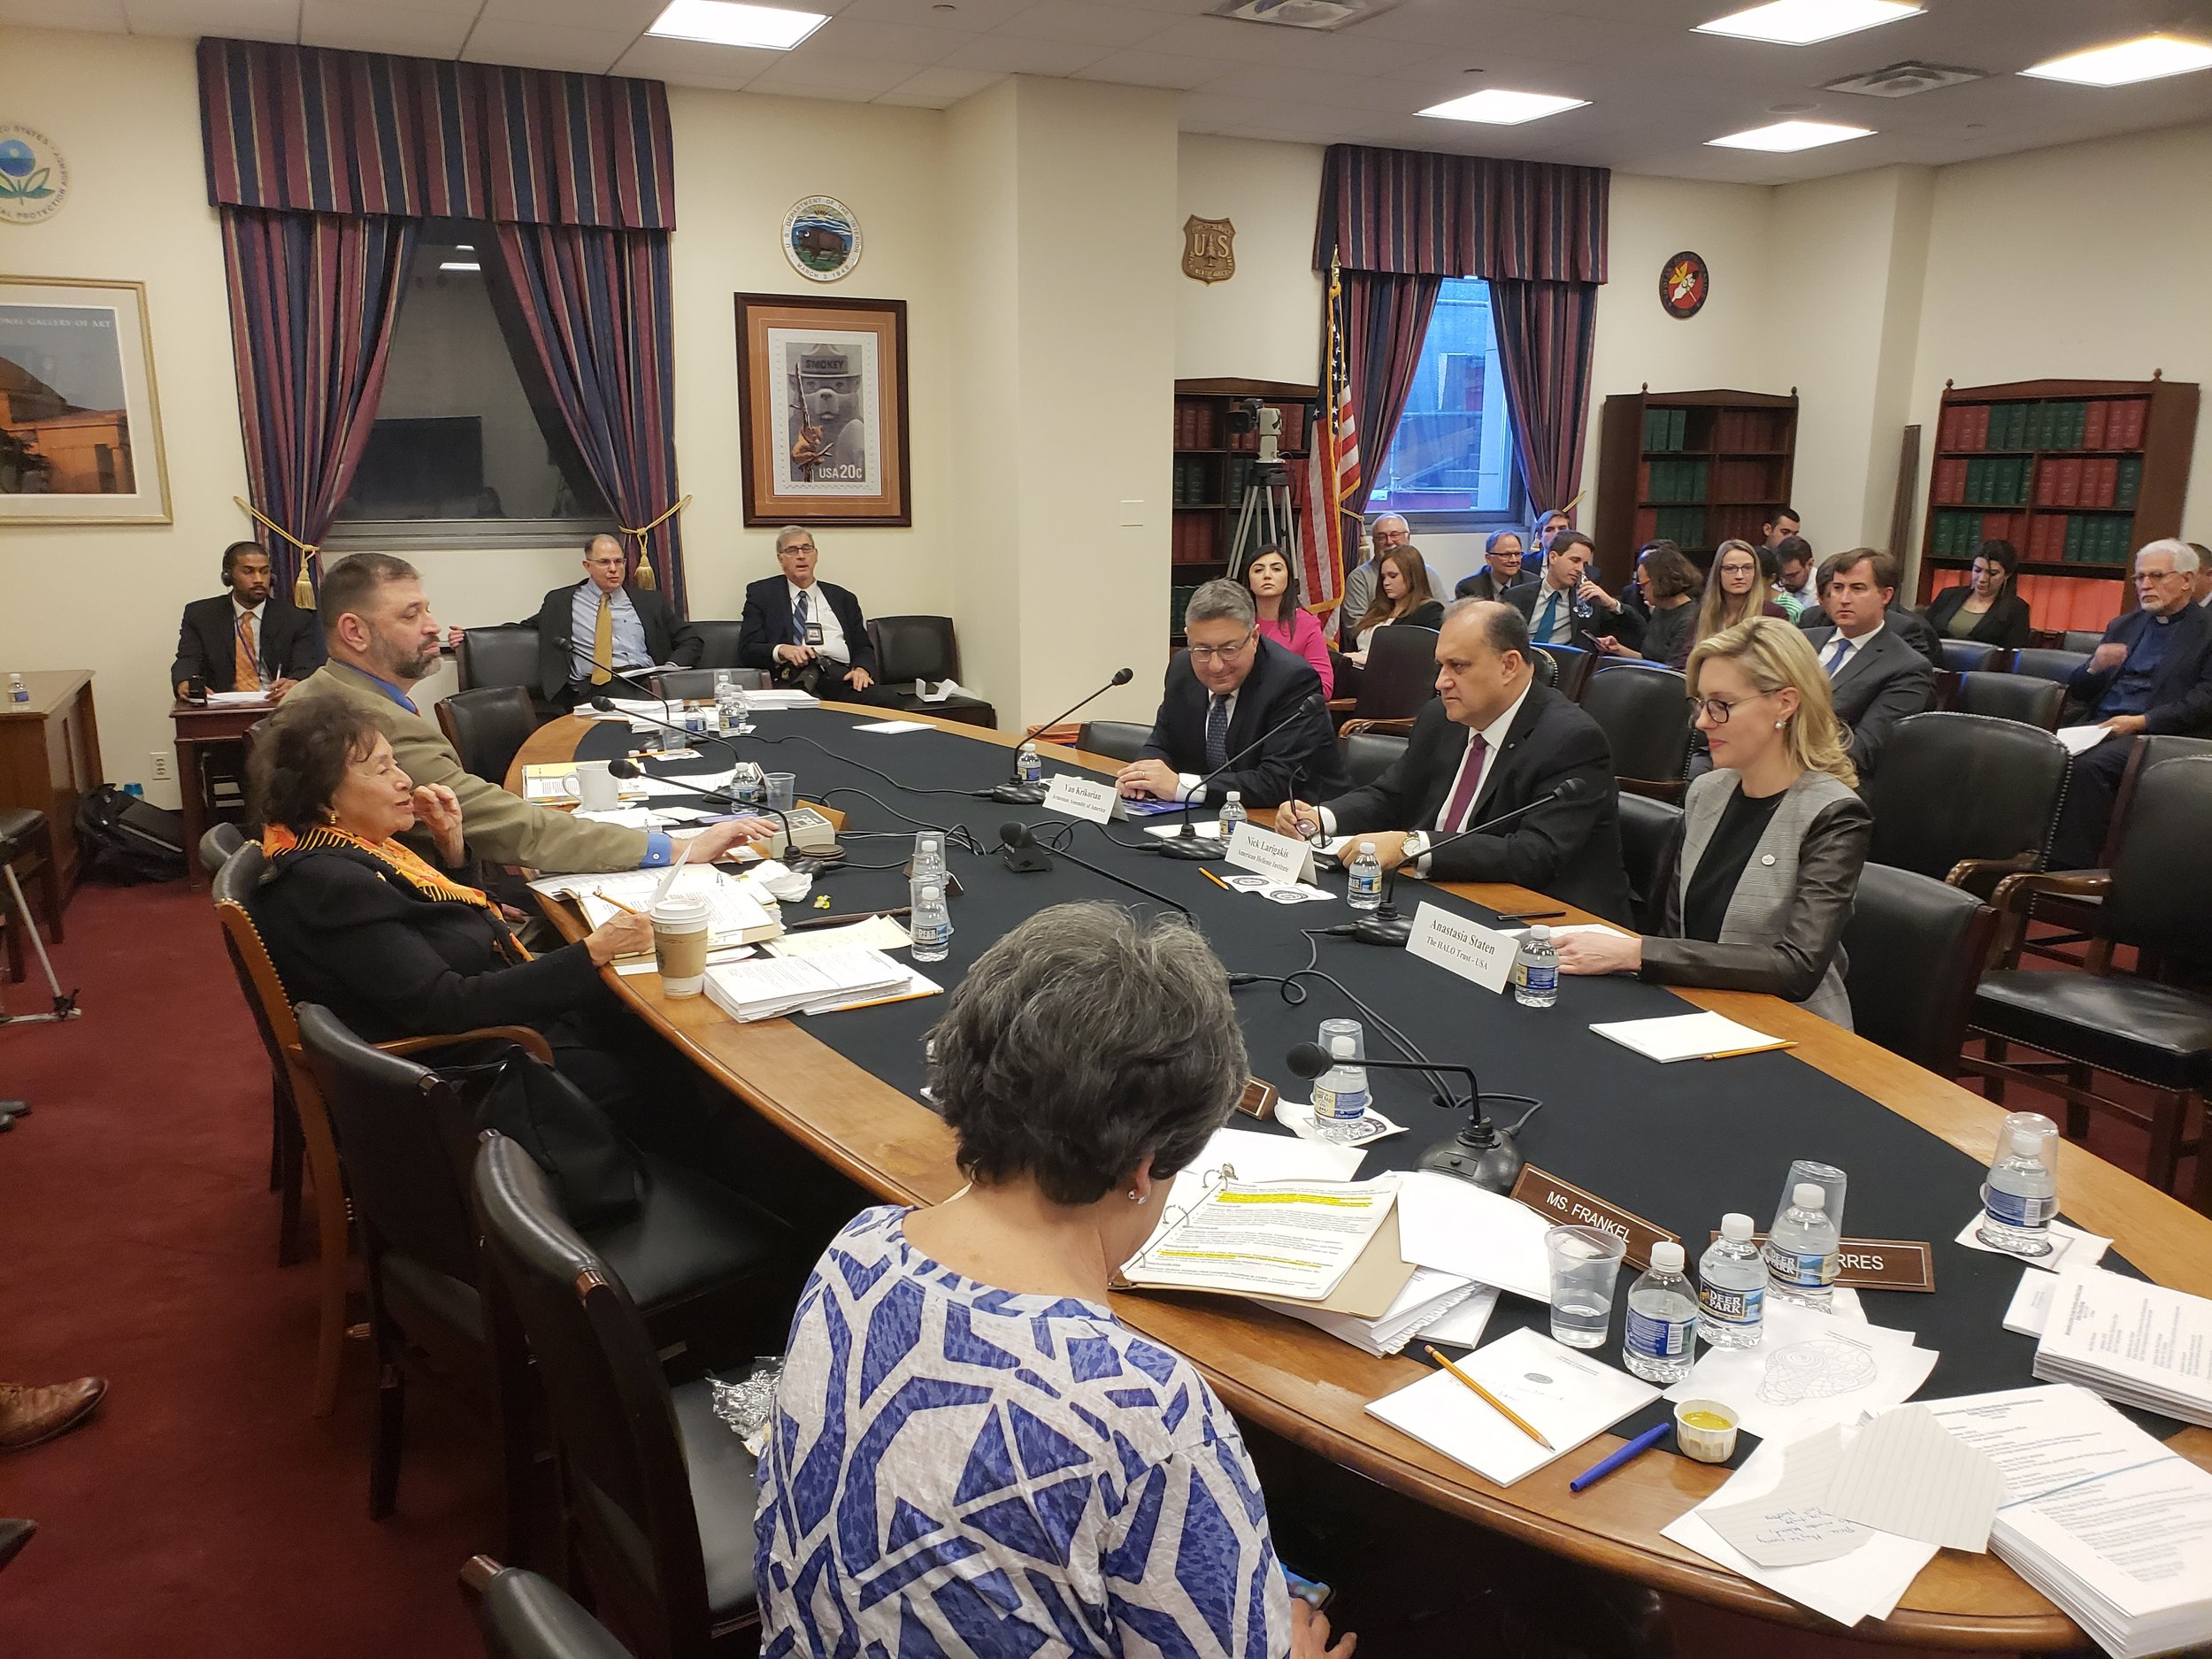 AHI President Larigakis Providing Testimony To the House Appropriations Subcommittee on State, Foreign Operations, and Related Programs, With Congresswoman Nita Lowey (L) & Congresswoman Lois Frankel (R)